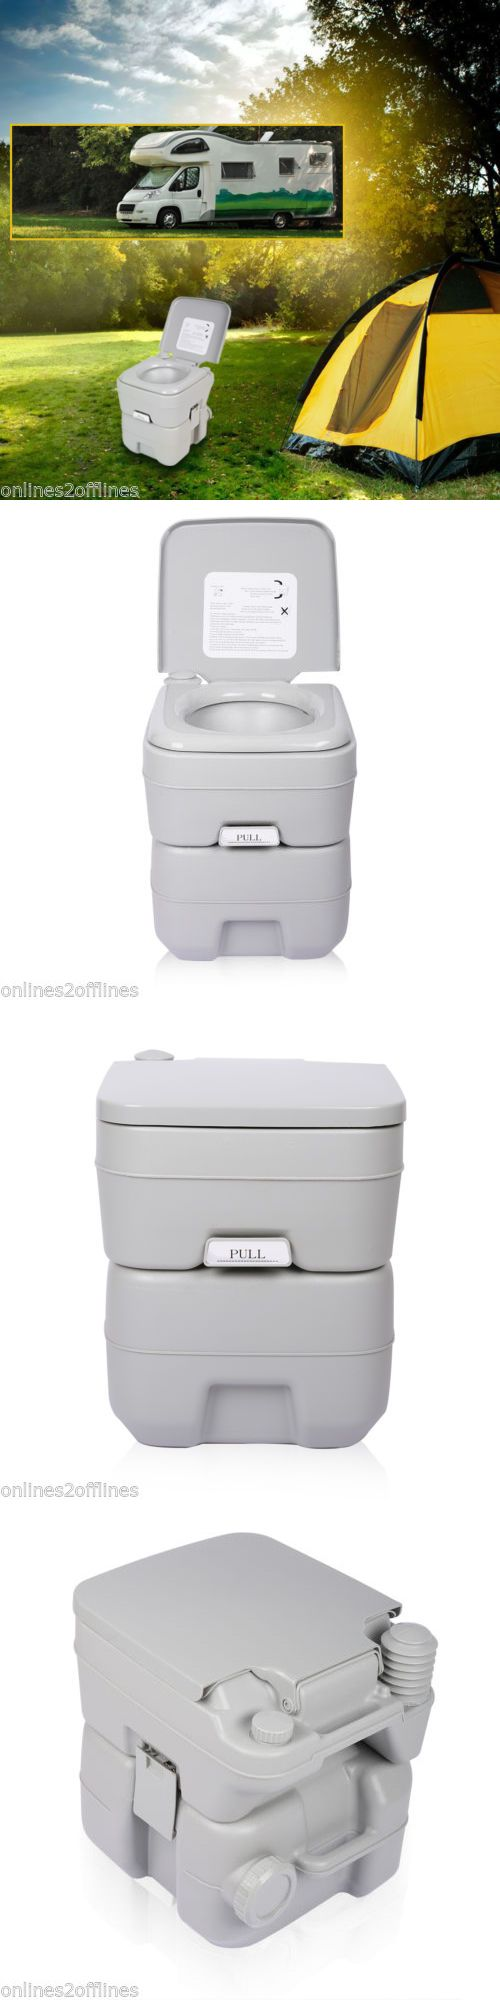 Portable Toilets and Accessories 181397: 5 Gallon 20L Portable Wc Toilet Flush Camping Porta Travel Outdoor Hiking Potty BUY IT NOW ONLY: $56.99